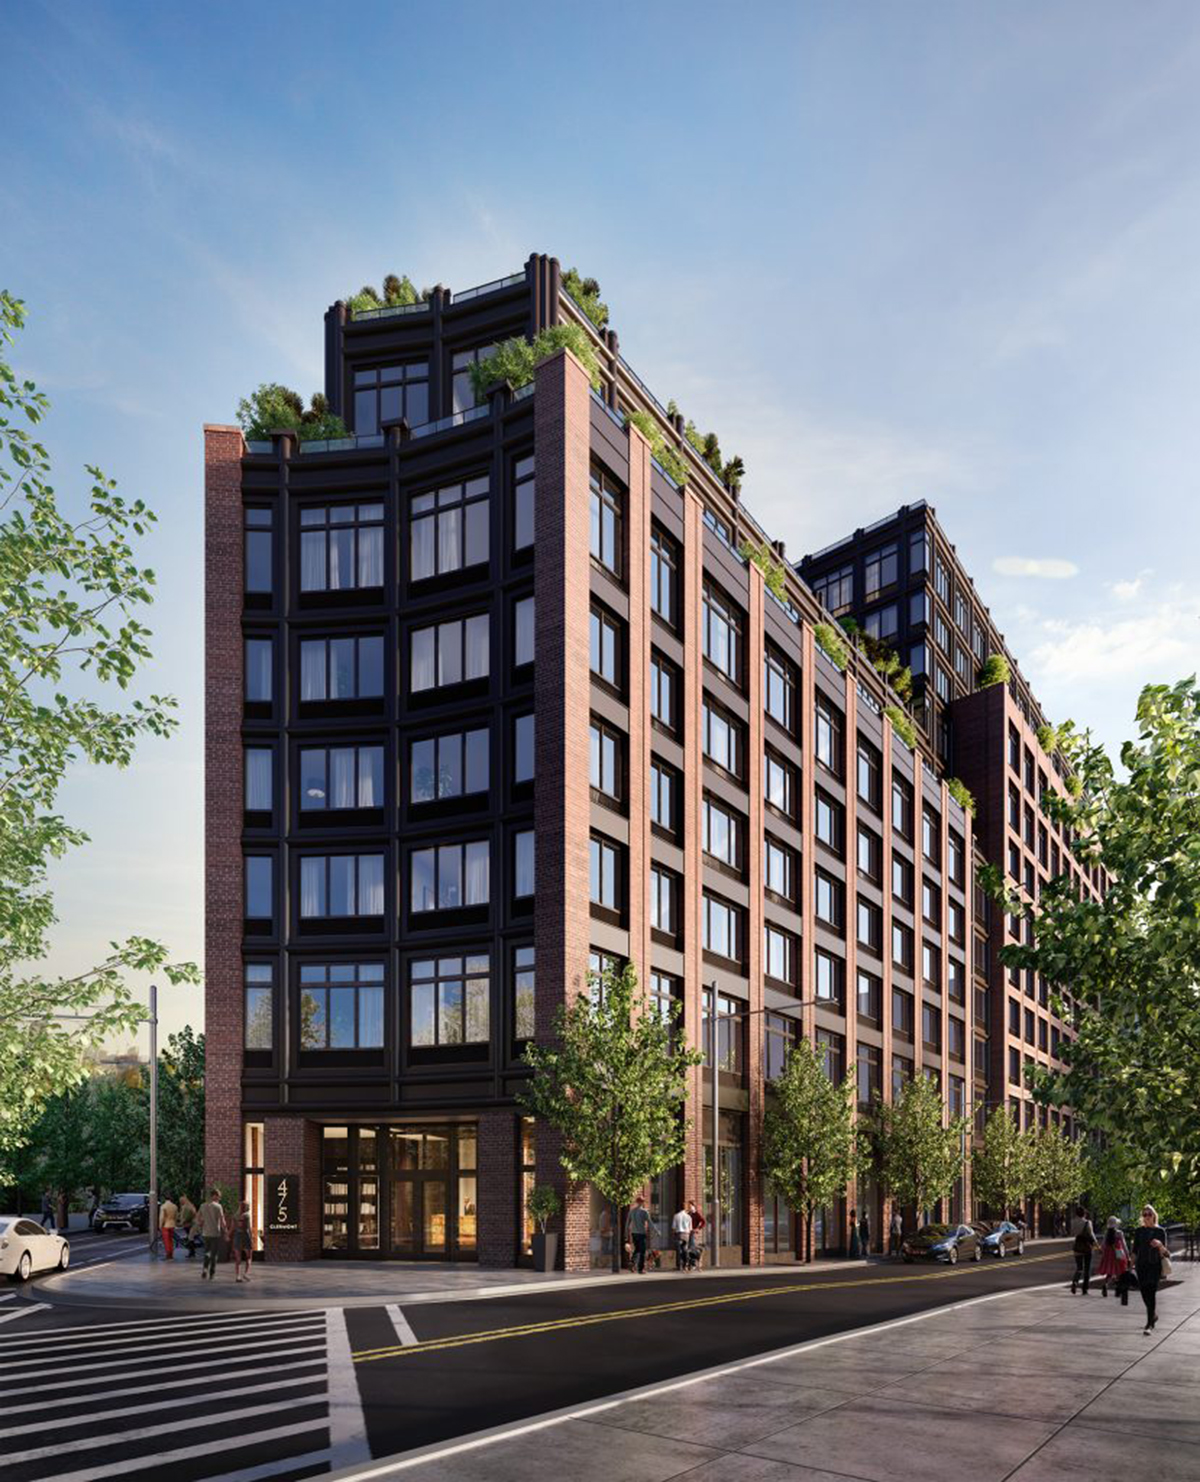 Brooklyn S 475 Clermont Cleared For Occupancy In Fort: BCG And RXR Realty Celebrate TCO At 475 Clermont; Designed